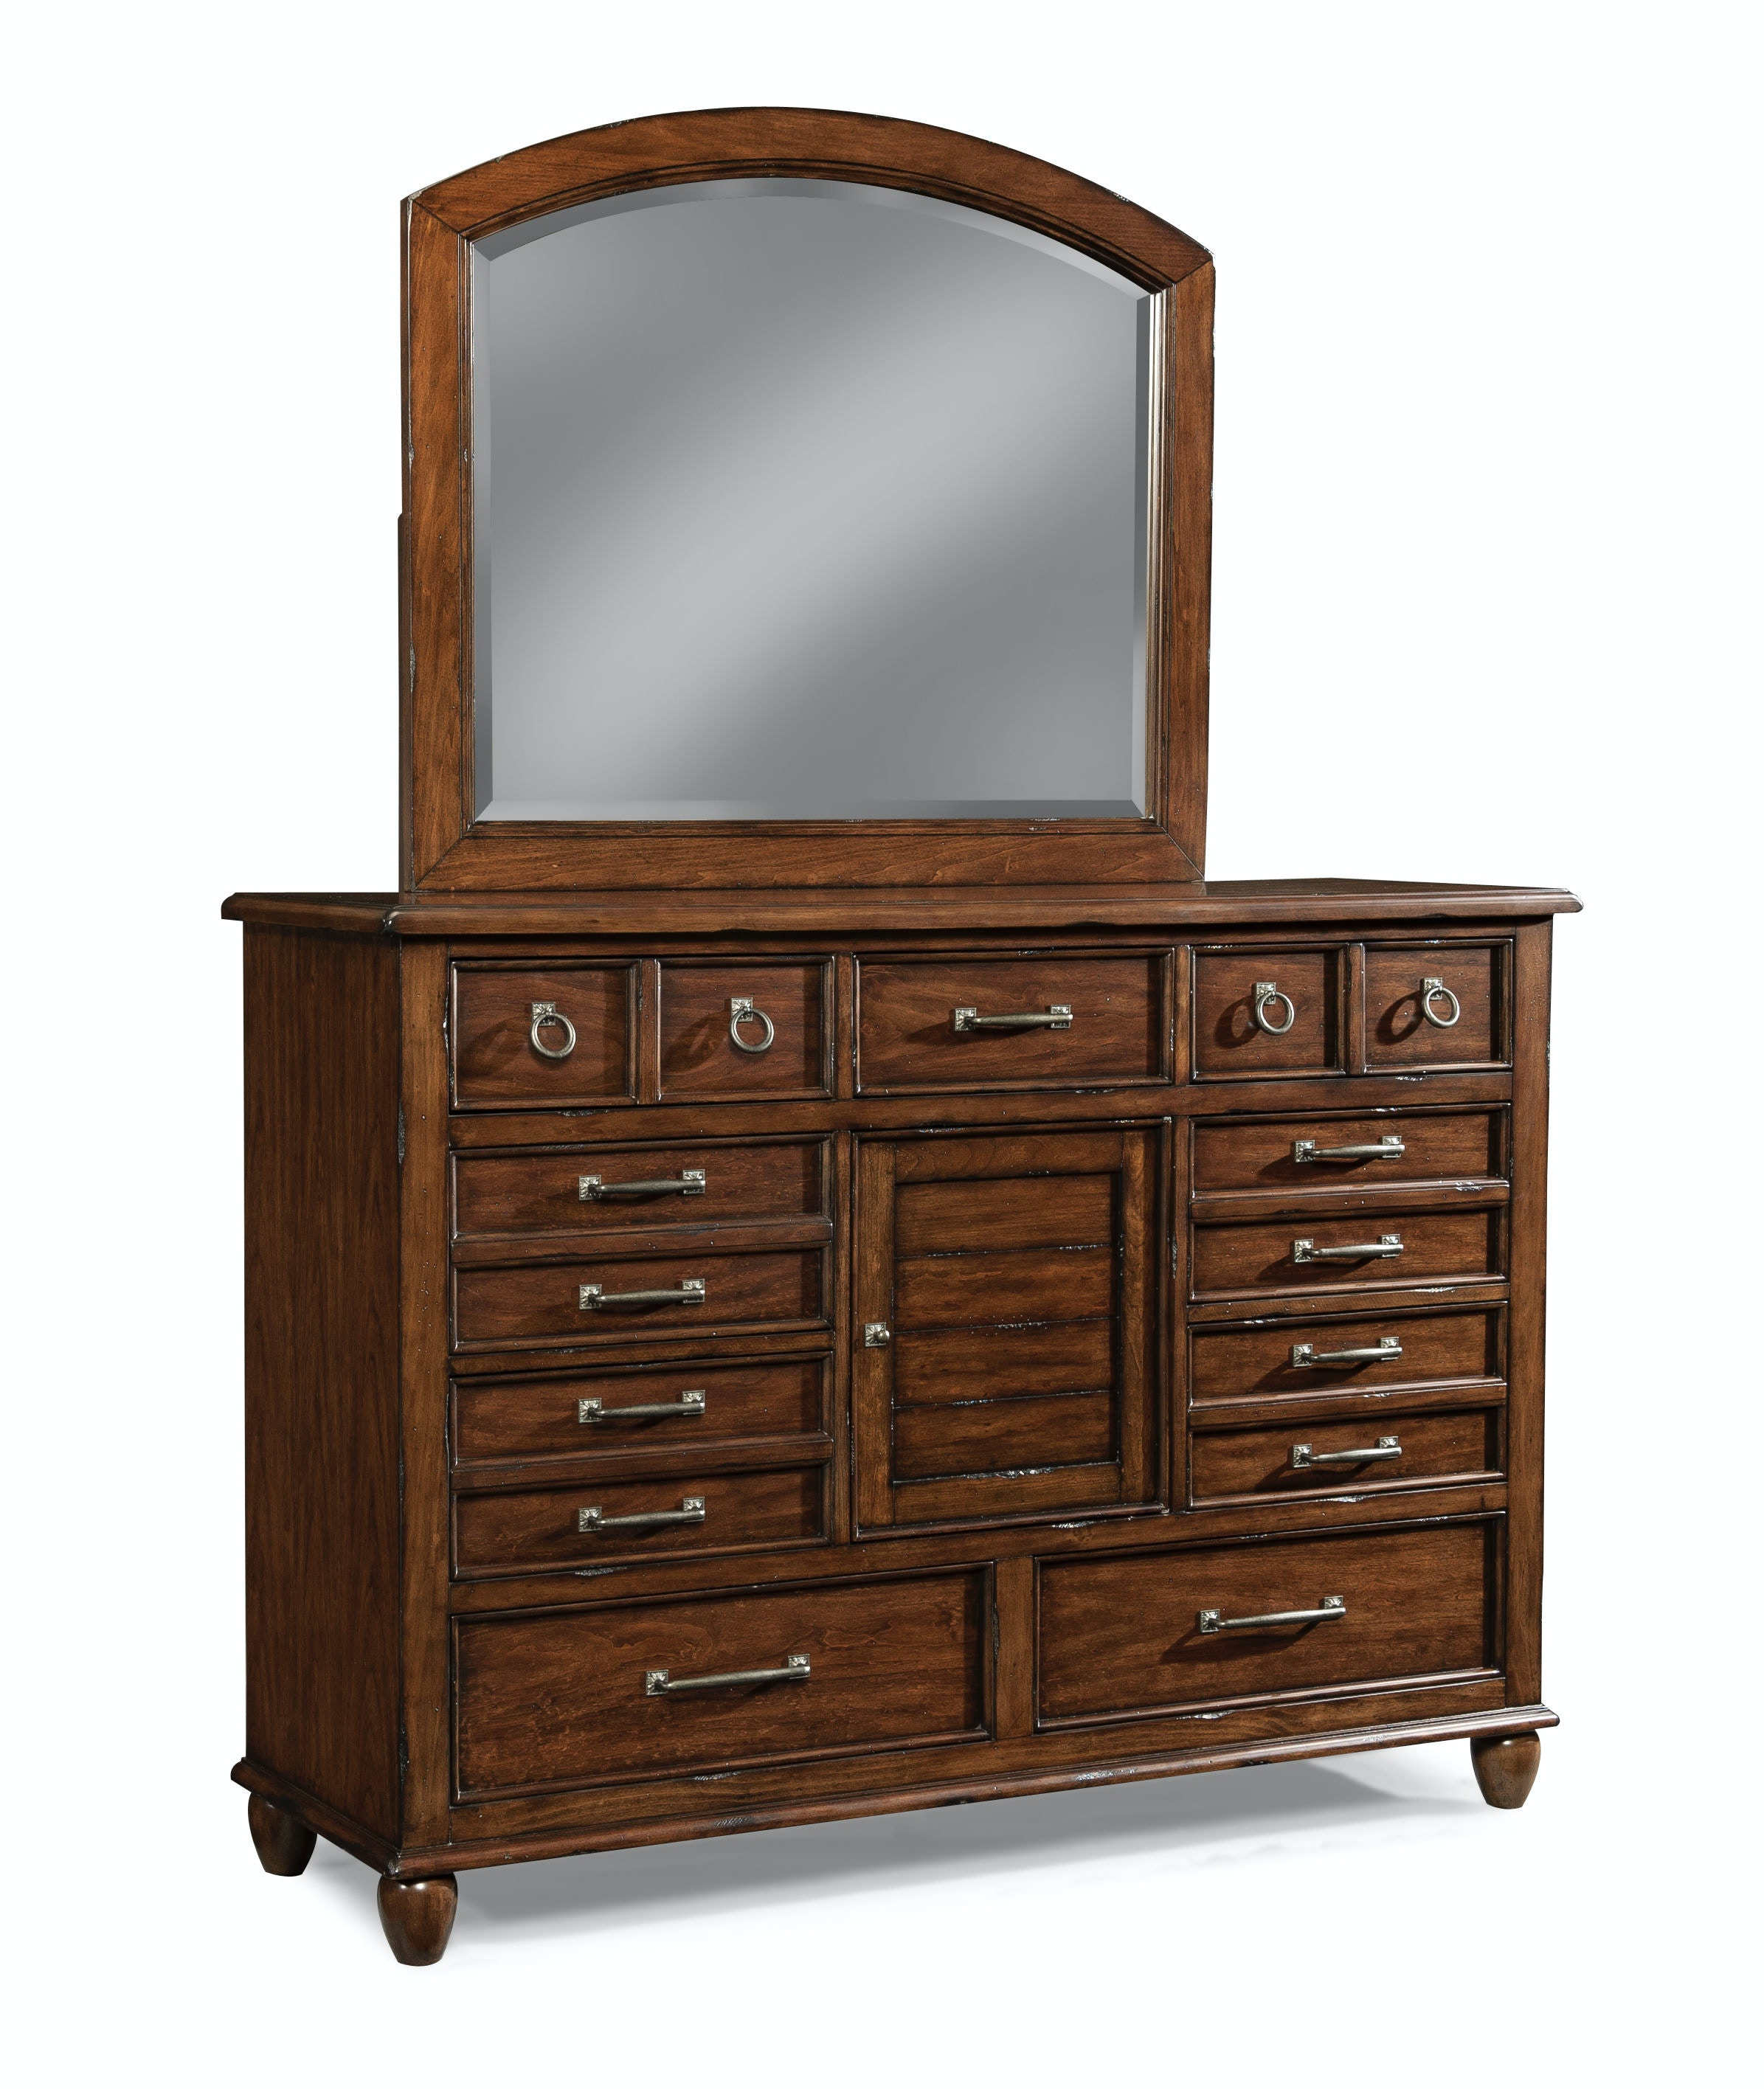 Hand Selected Rustic Cherry Veneers And Rubber Wood Solids Are Used For The  Blue Ridge Collection. Mirror 426 660 MIRR Carolina Preserves